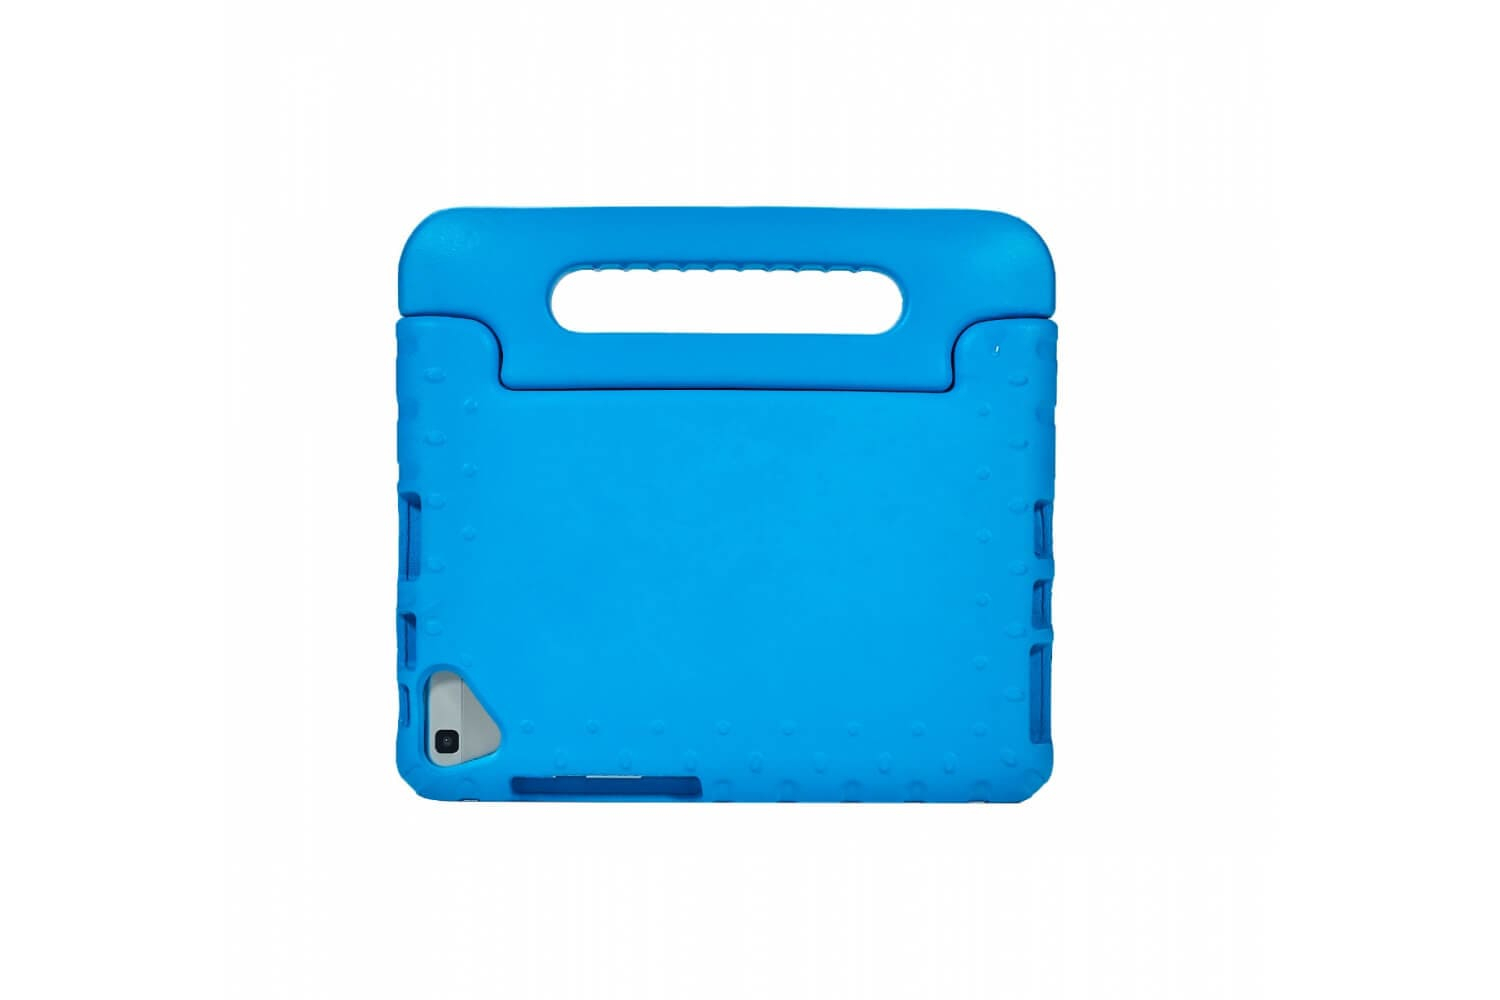 samsung galaxy tab a 8.0 kids cover blue, kids case for galaxy tab a 8.0 2019 blue